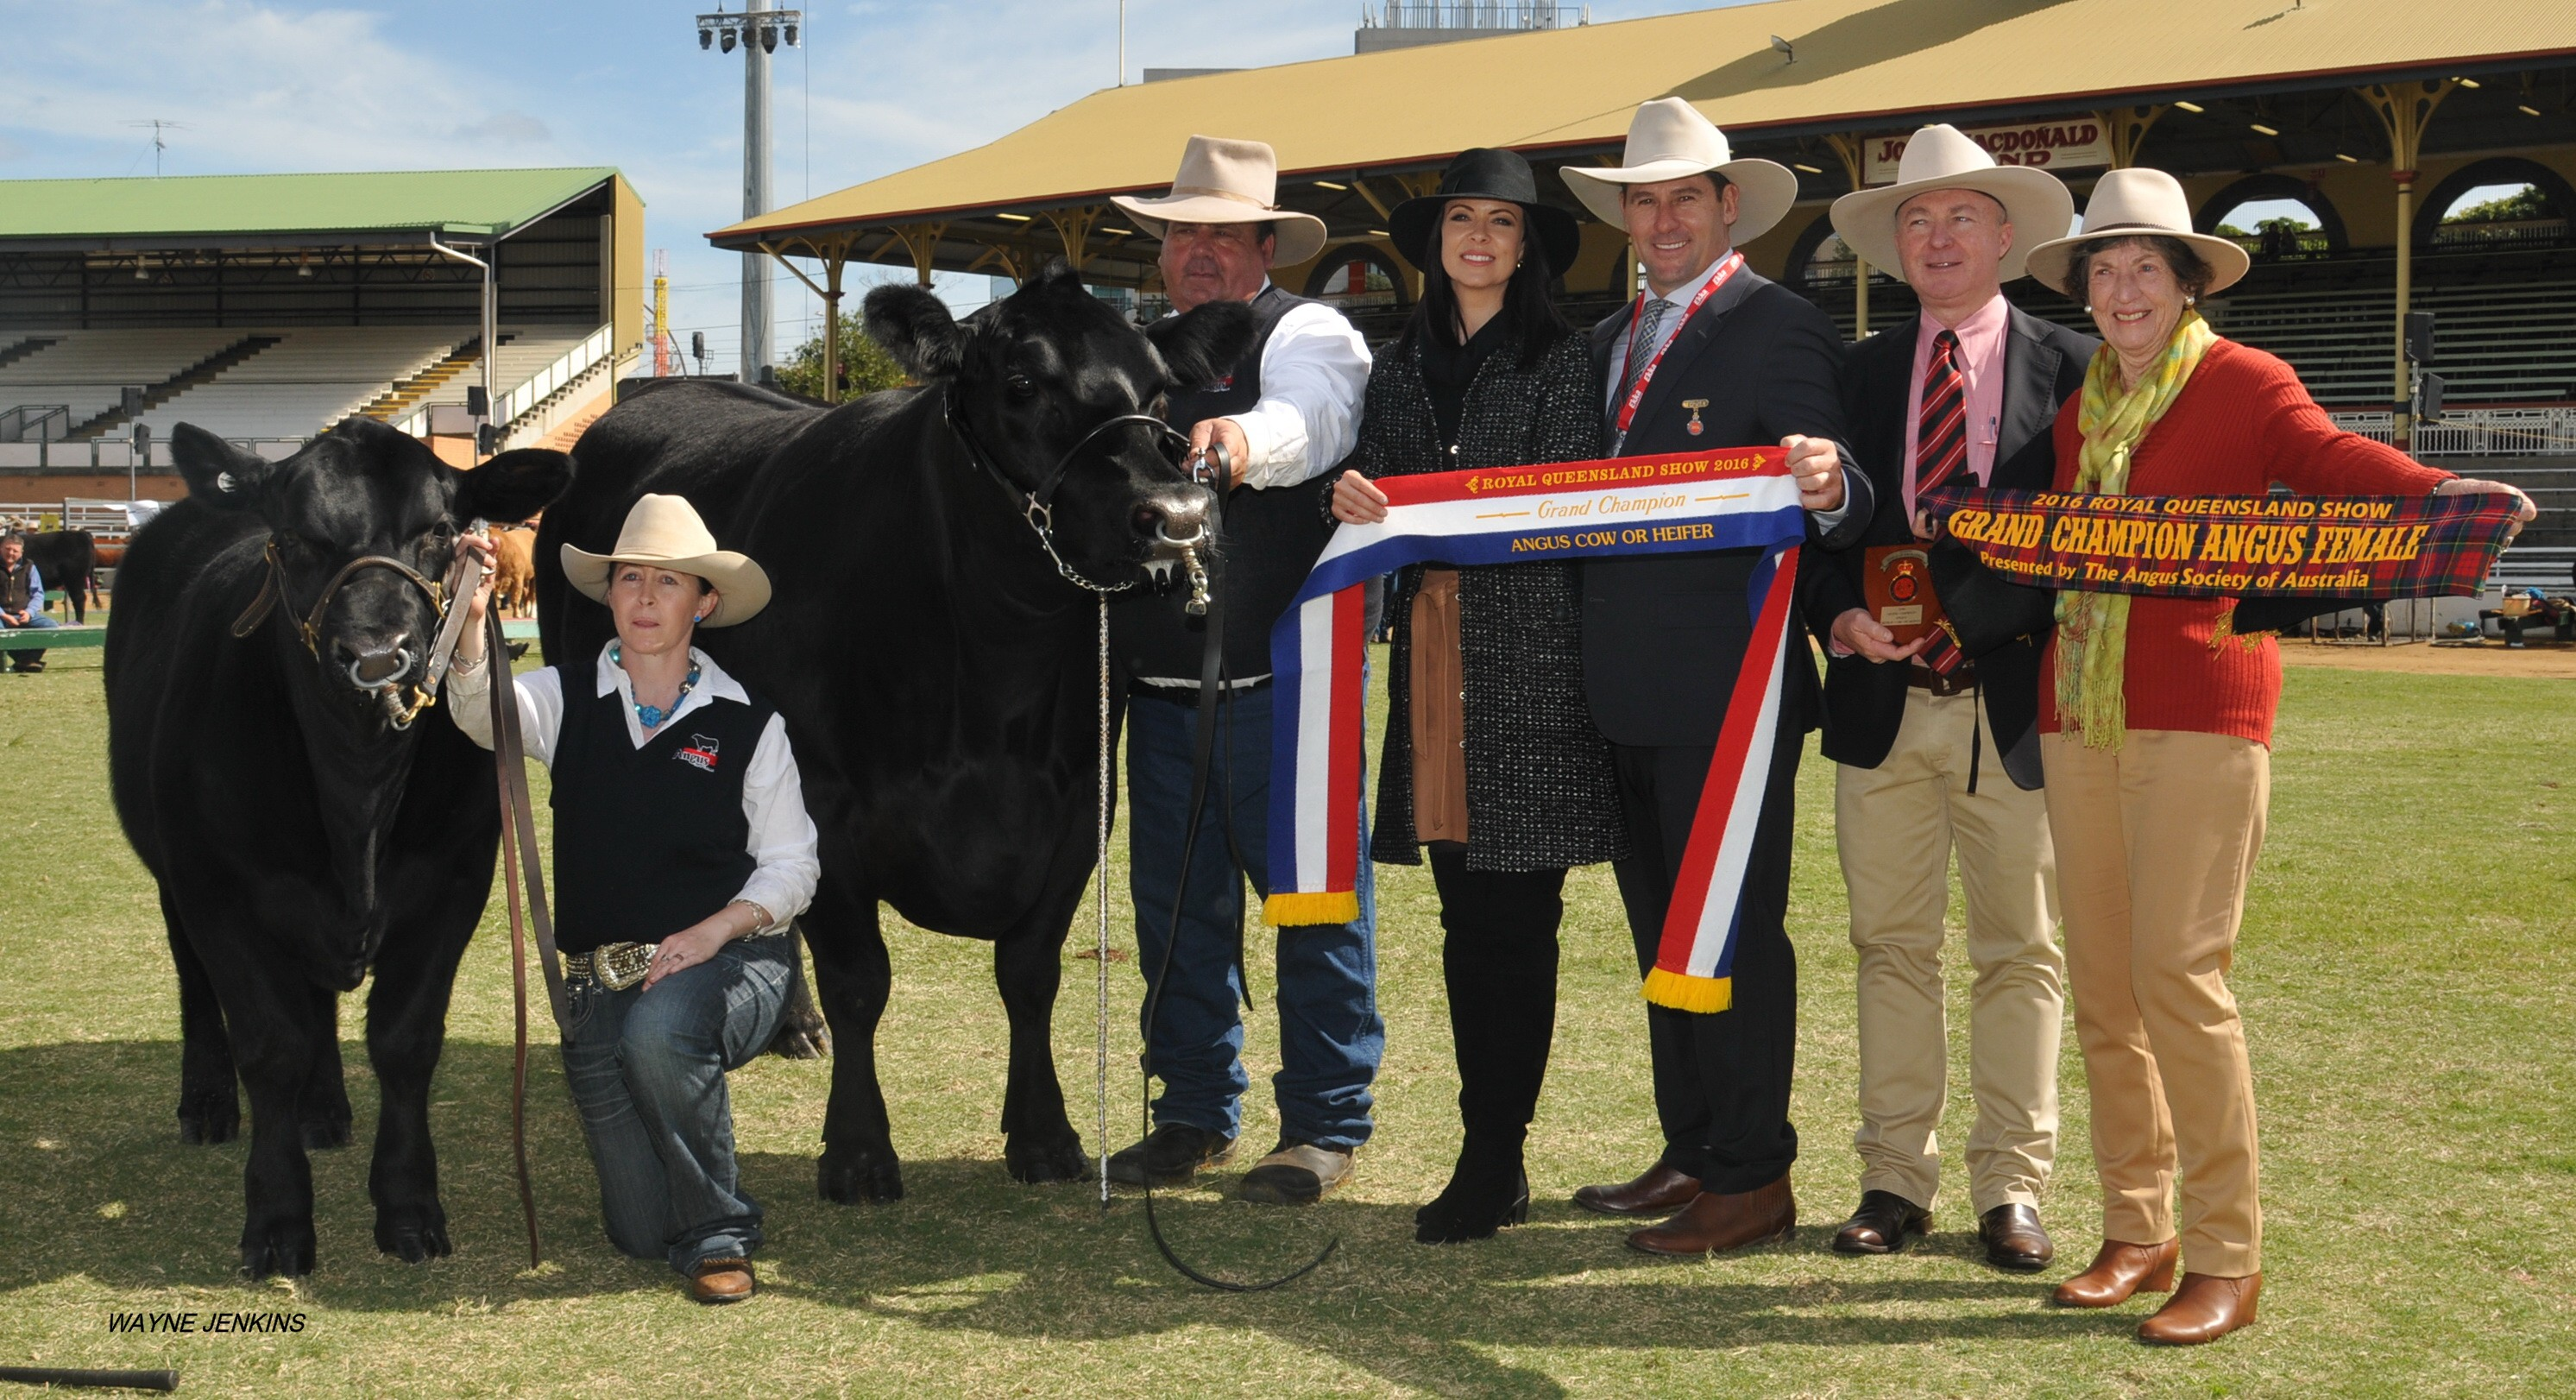 EKKA 2016 Grand Champion Angus Female